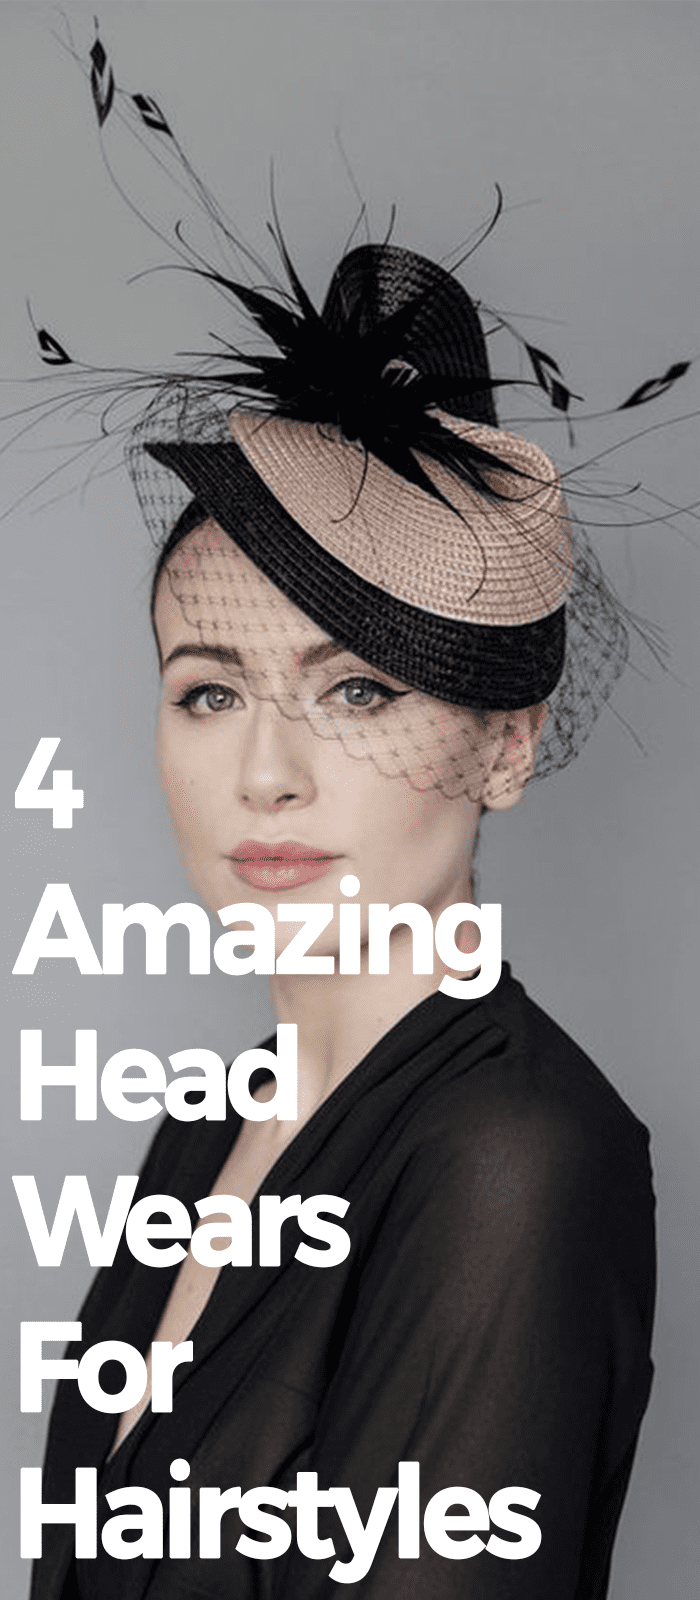 4 Amazing Head Wears For Hairstyles